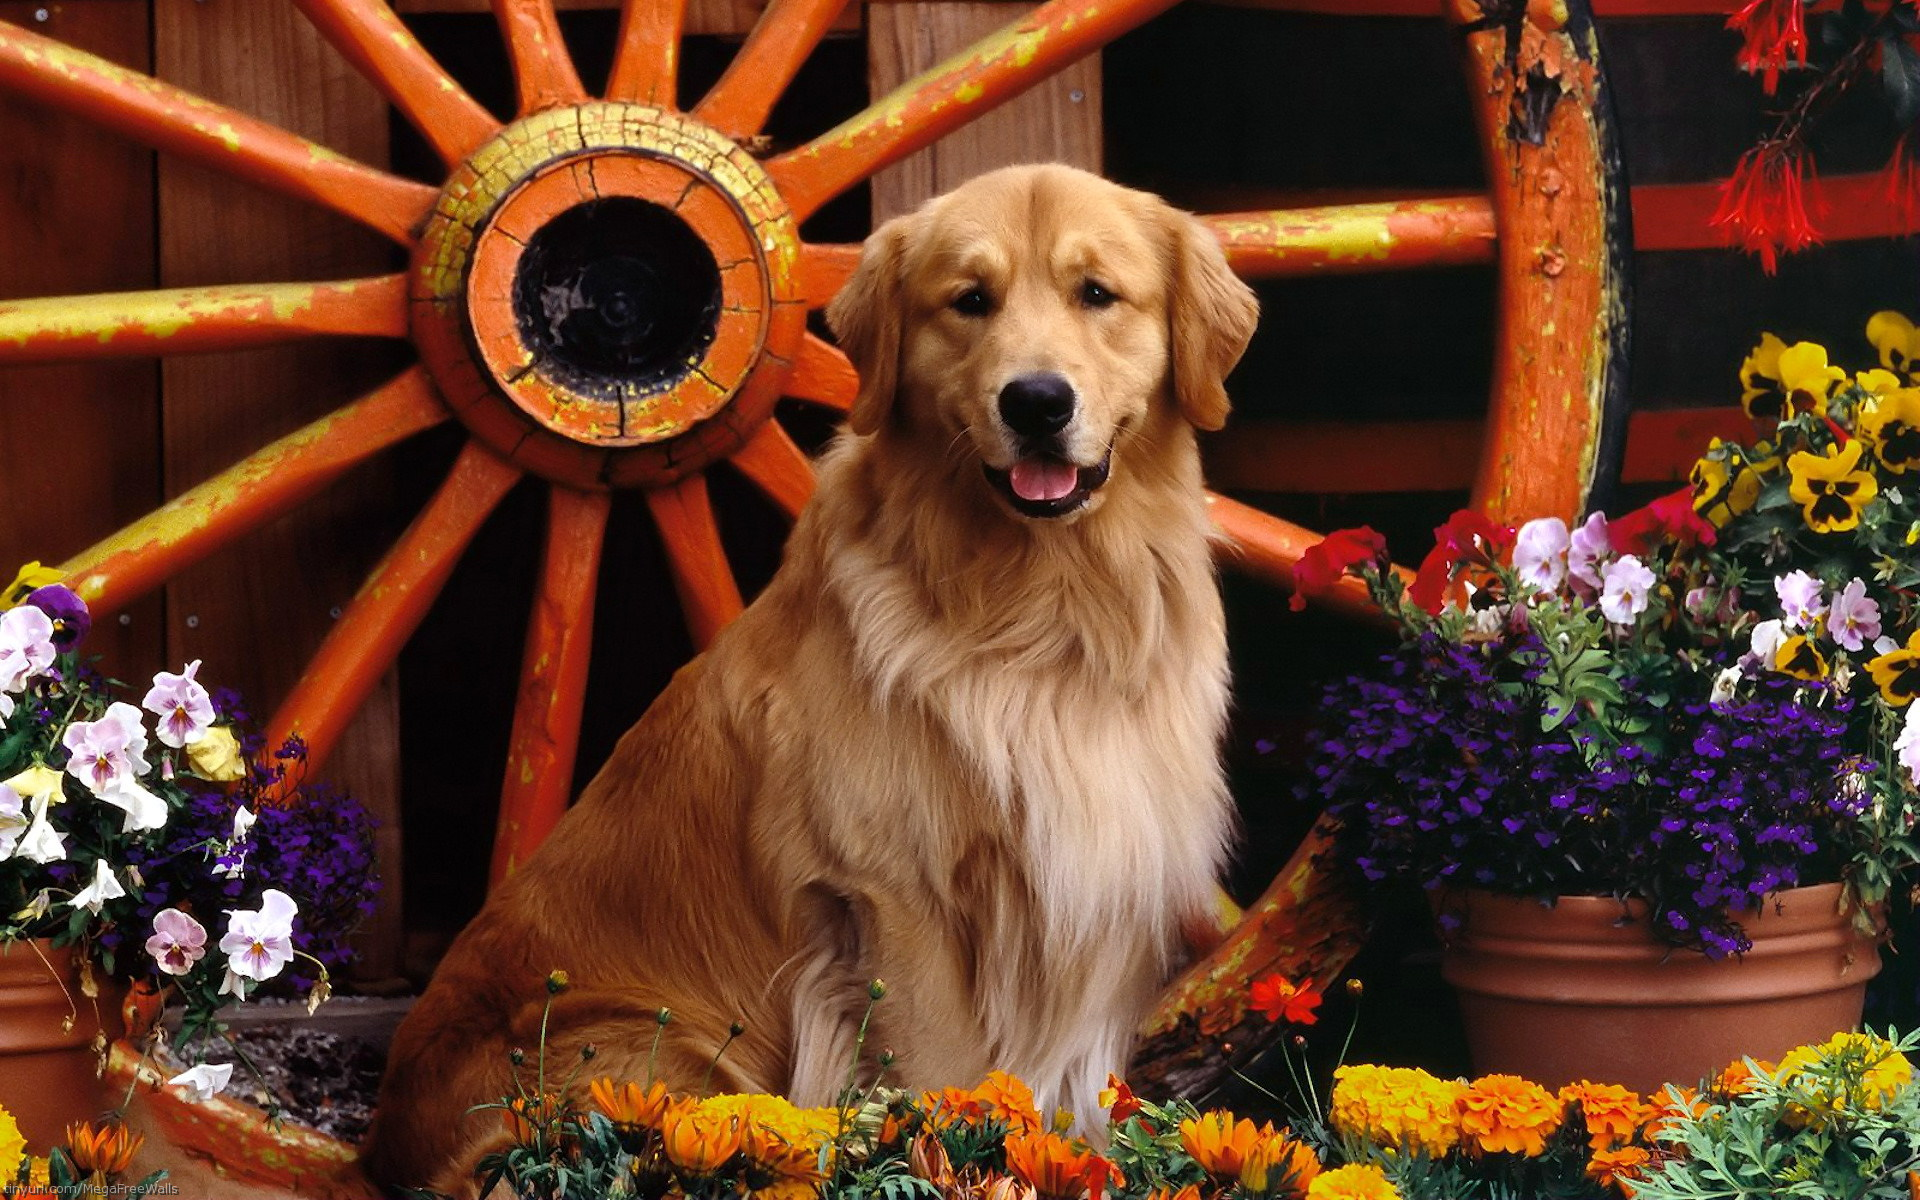 Wallpaper Retriever near the wheel